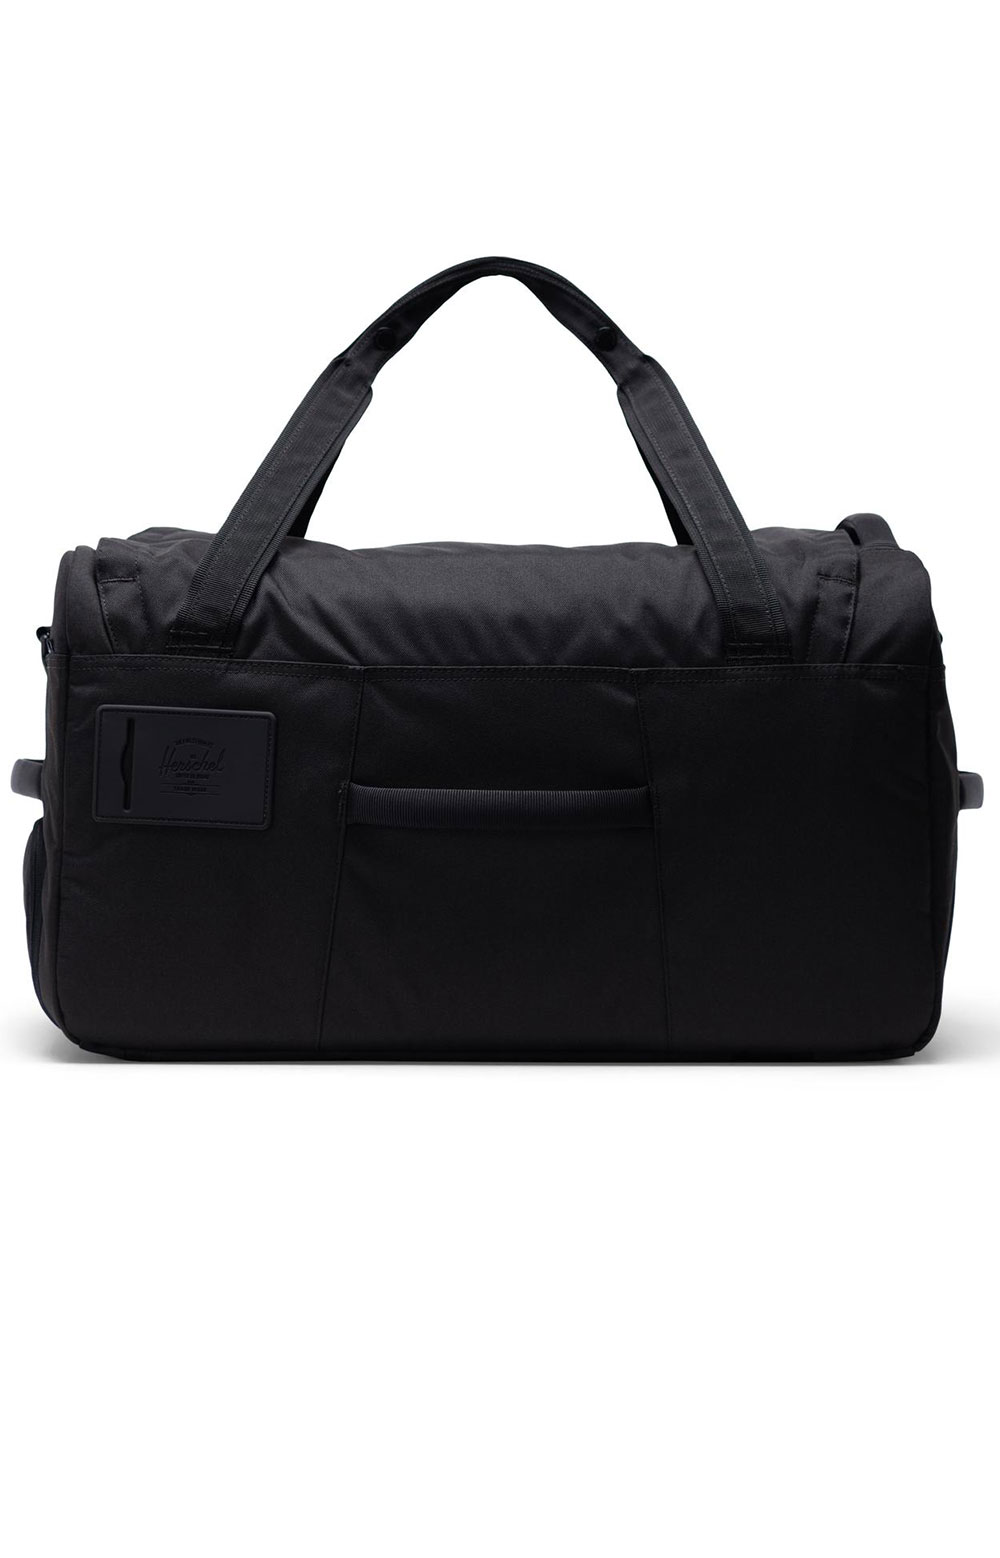 Outfitter Luggage 50L - Black 4